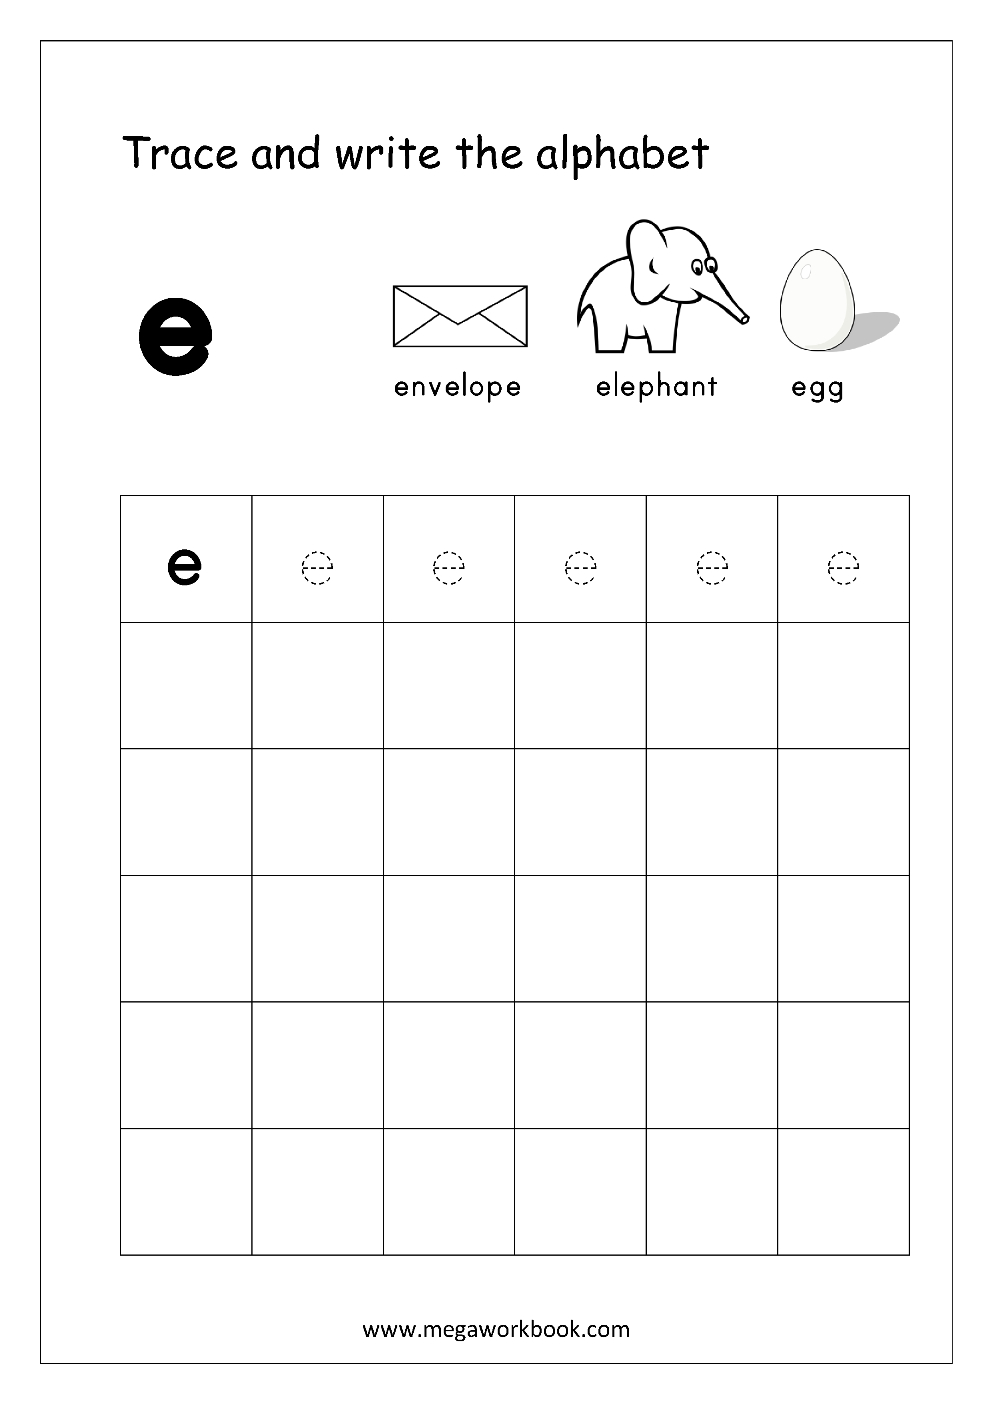 Free English Worksheets - Alphabet Writing (Small Letters regarding Small Letters Tracing Worksheets Pdf